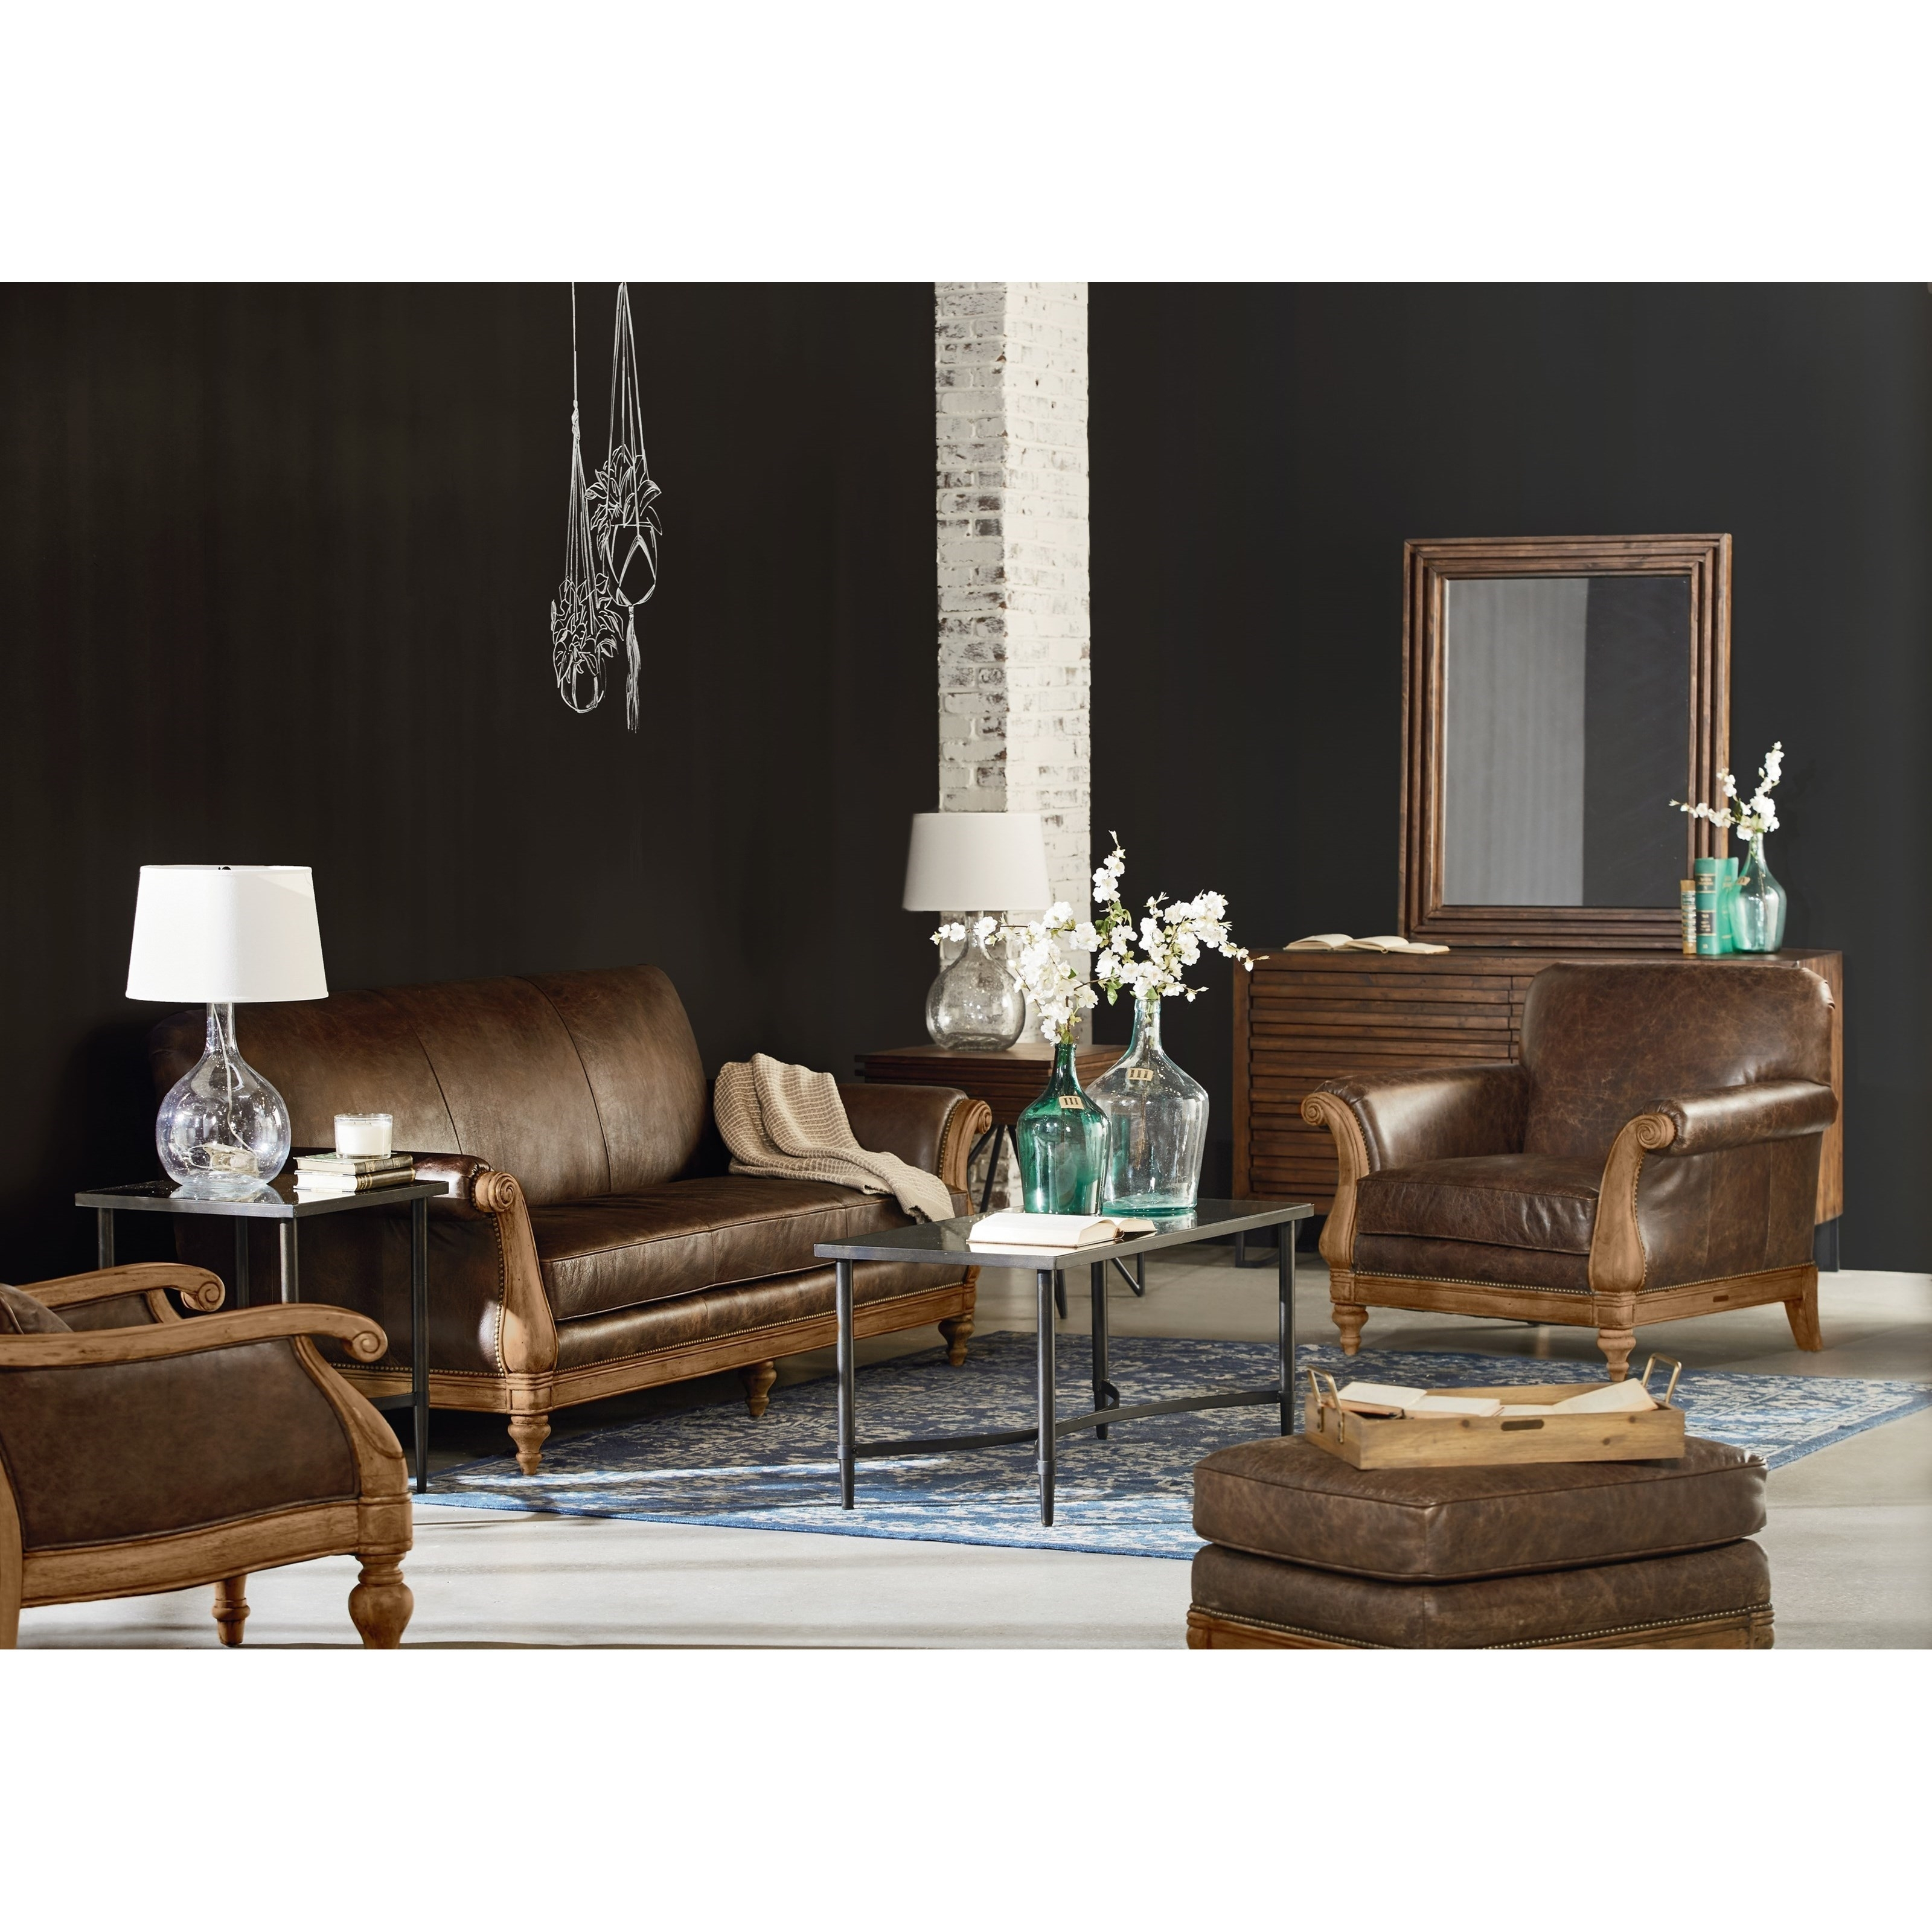 Magnolia Furniture Leather Sofa | Baci Living Room For Magnolia Home Homestead 4 Piece Sectionals By Joanna Gaines (View 26 of 30)